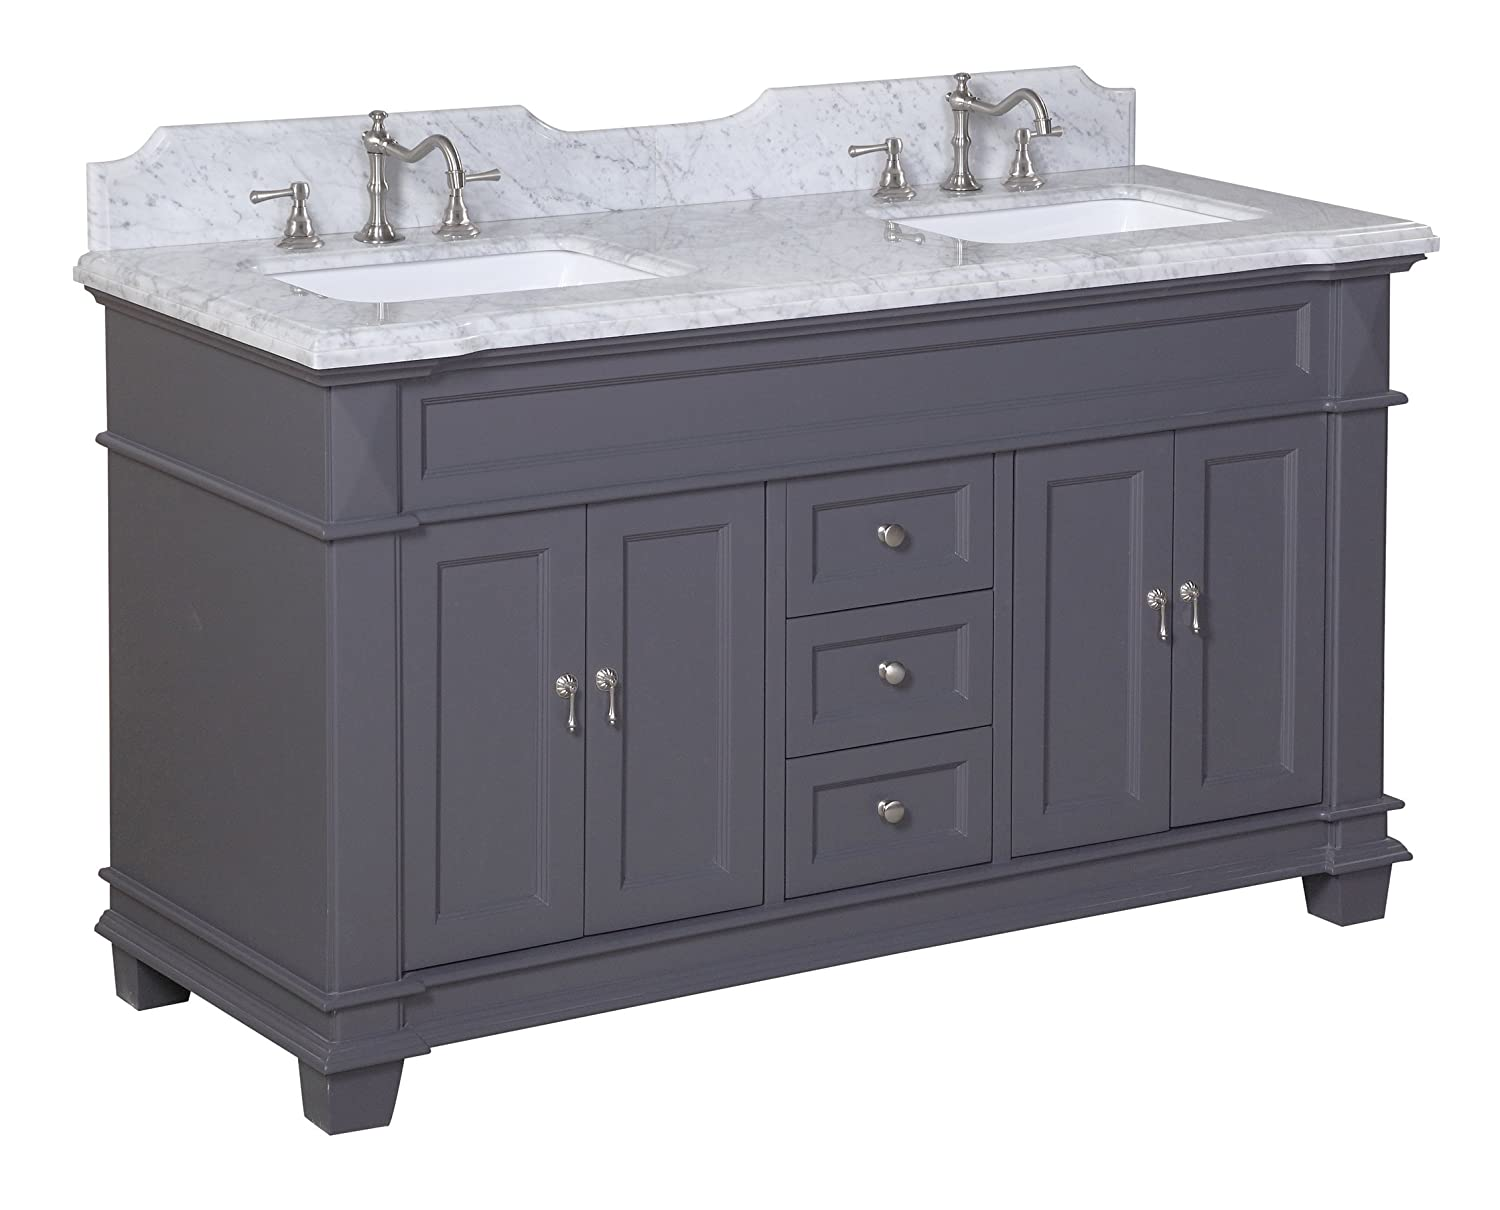 Durable Service Kitchen Bath Collection Kbc599gycarr Elizabeth Double Sink Bathroom Vanity With